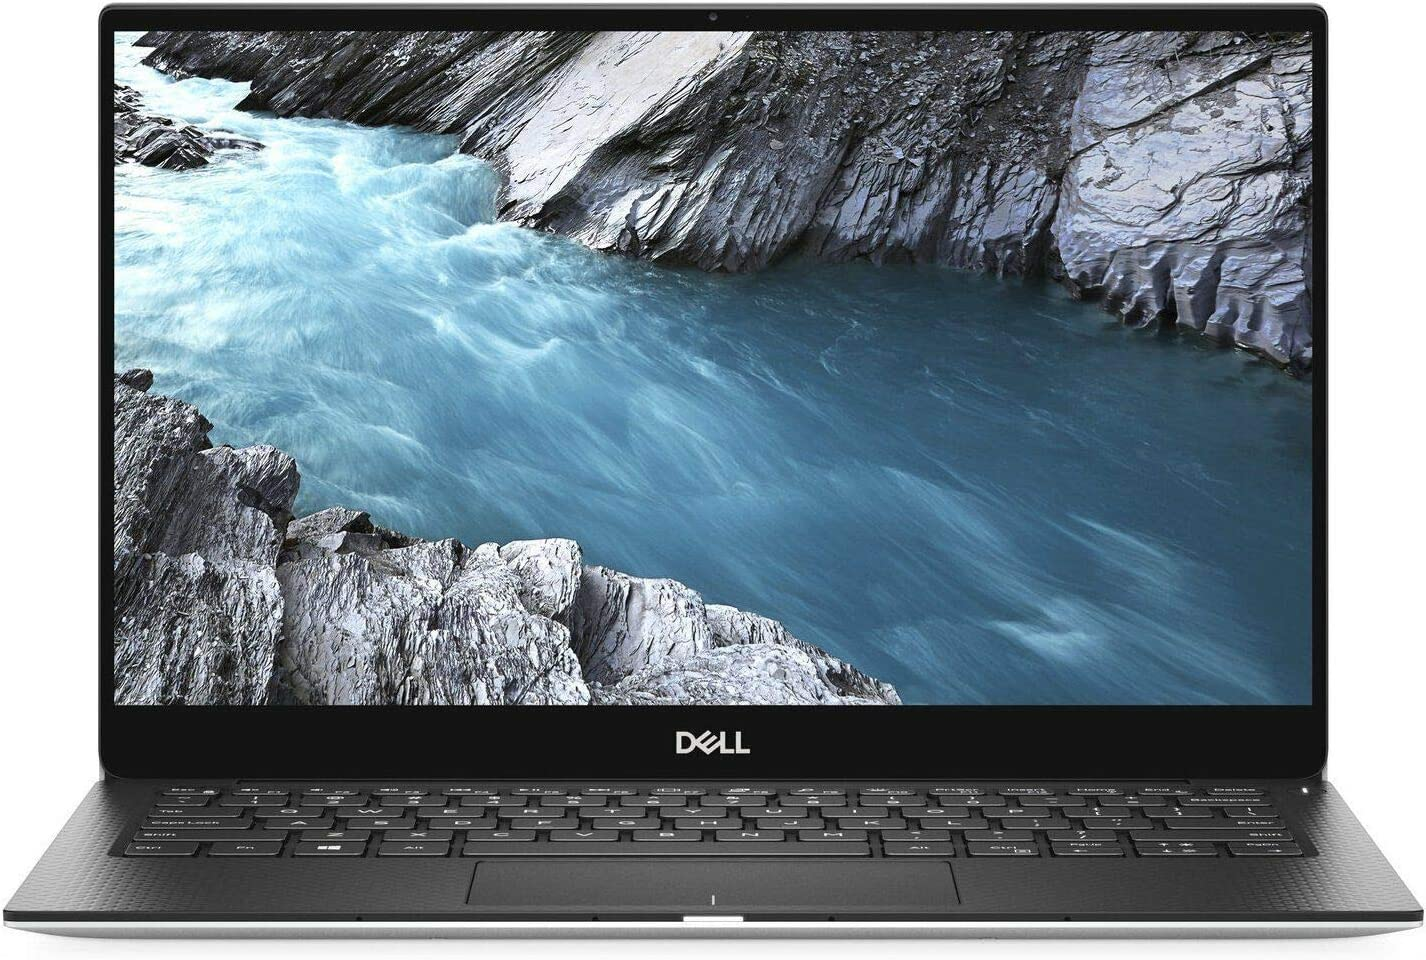 "Dell XPS 9380 Laptop, 13.3"" FHD (1920x1080), Intel Core 8th Gen i7-8565U, 8GB RAM, 256GB Solid State Drive, Windows 10 Home"